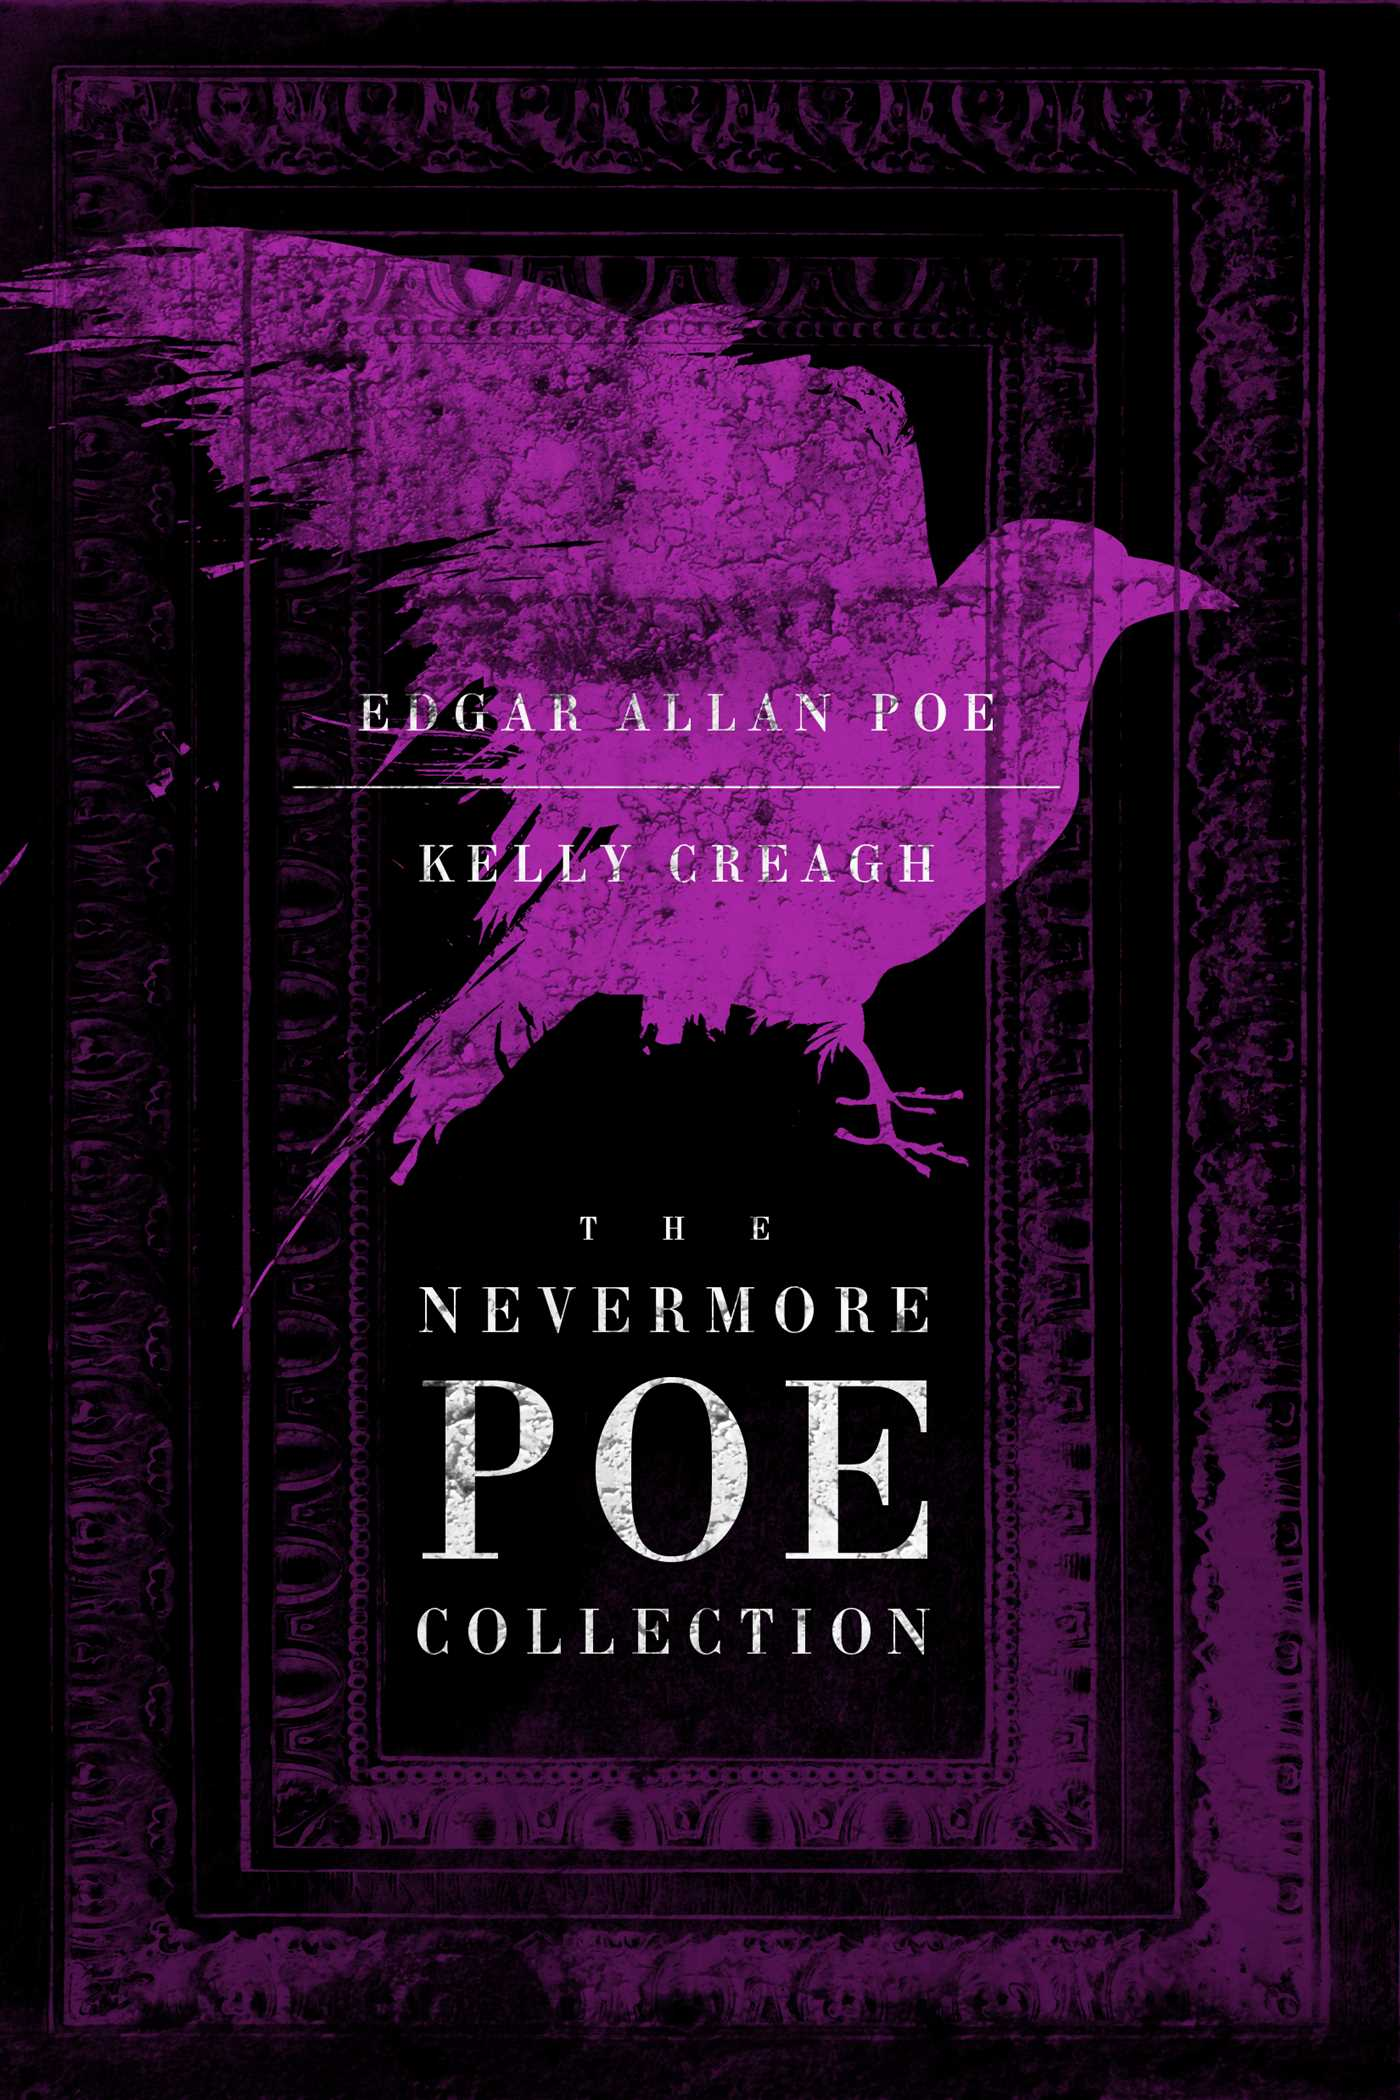 The-nevermore-poe-collection-9781442453319_hr